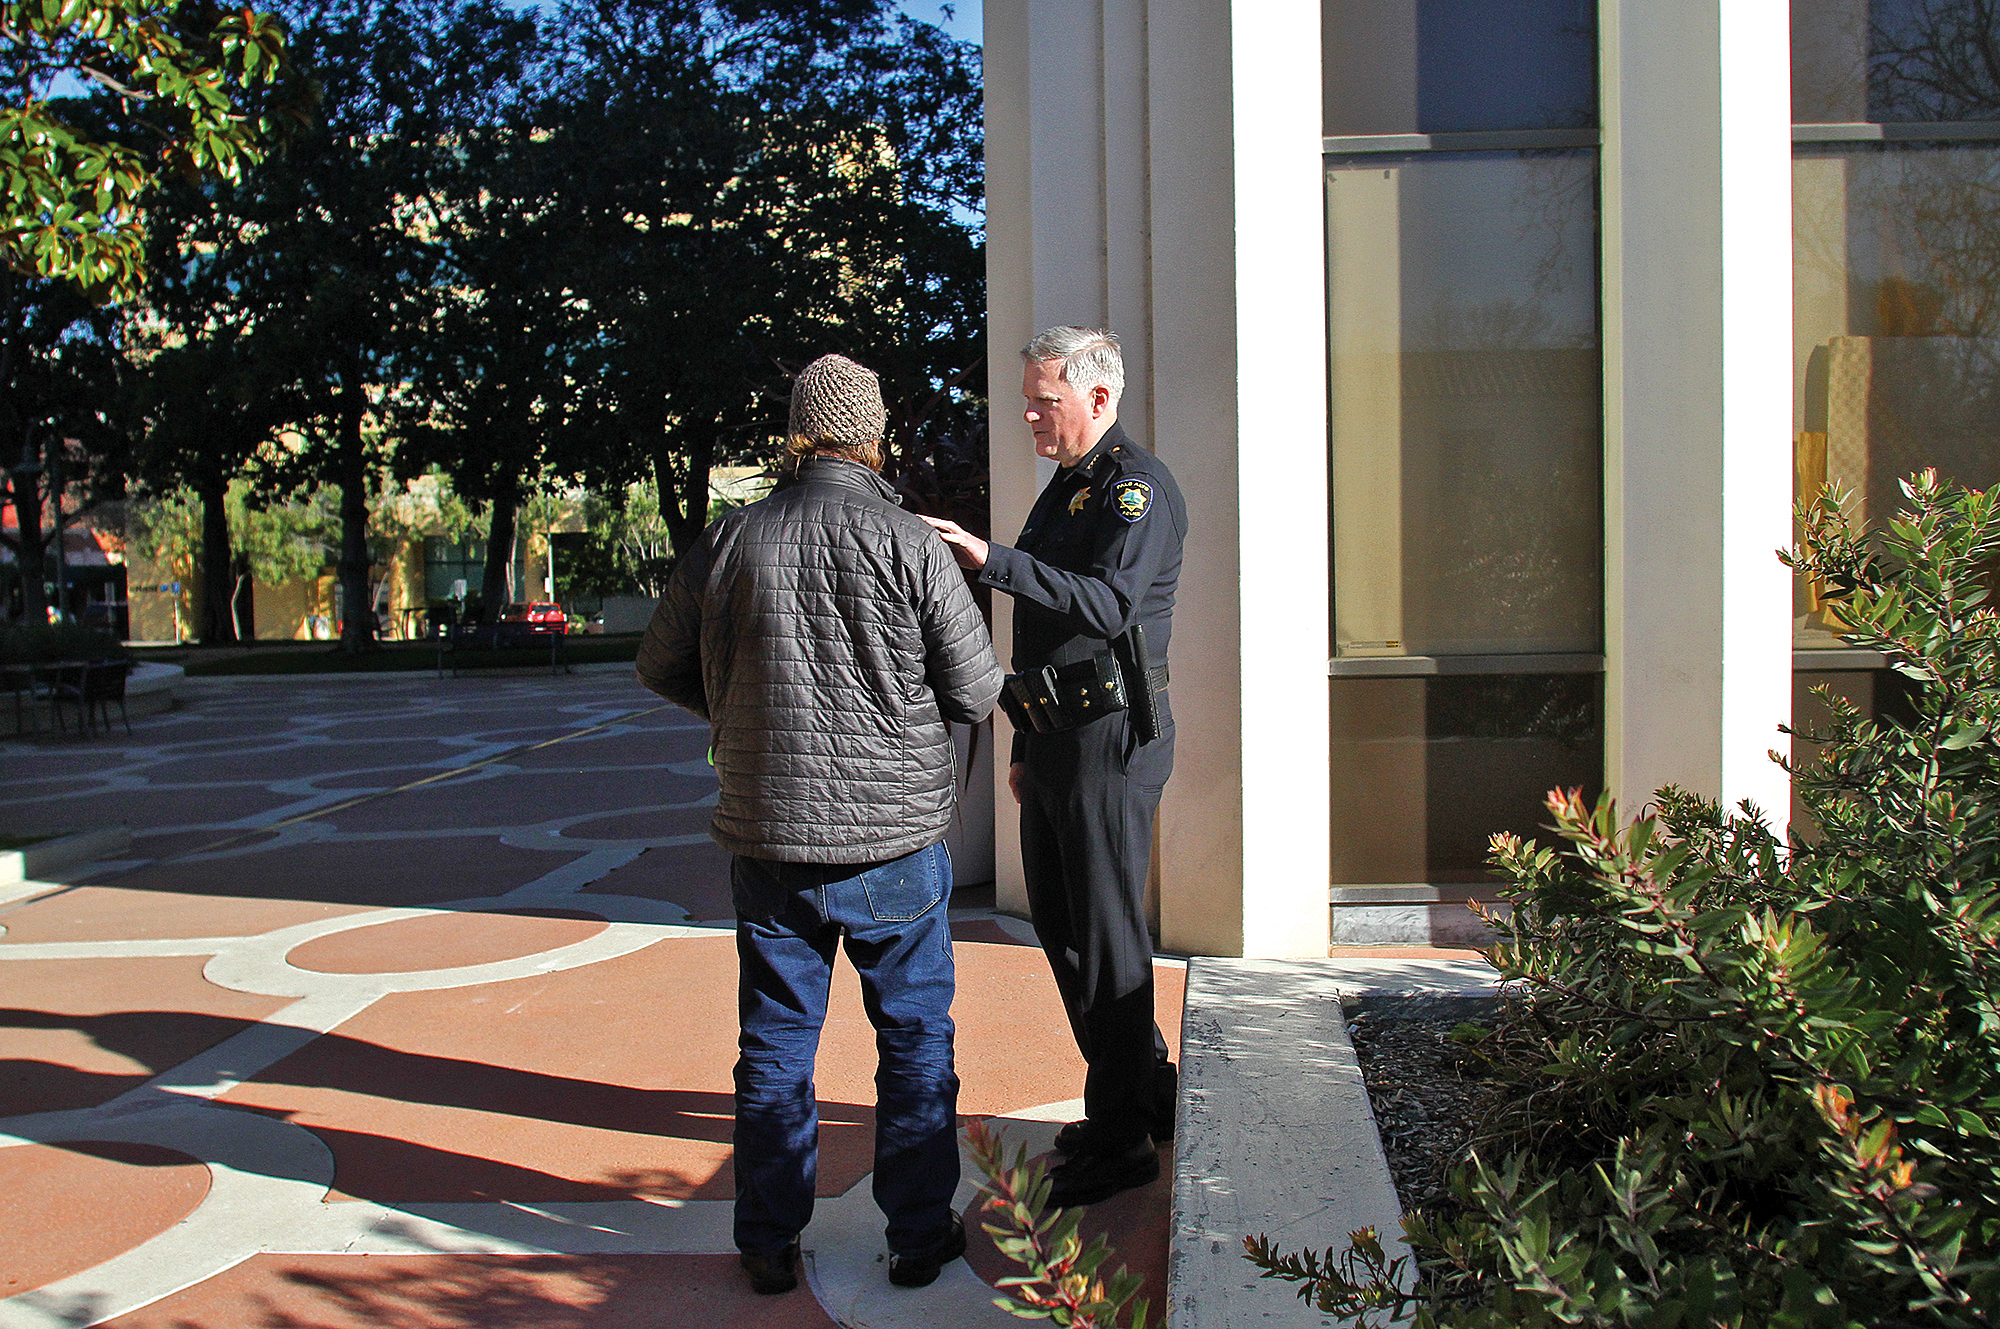 Chief Dennis Burns greets a man outside of City Hall on Dec. 29, 2016.